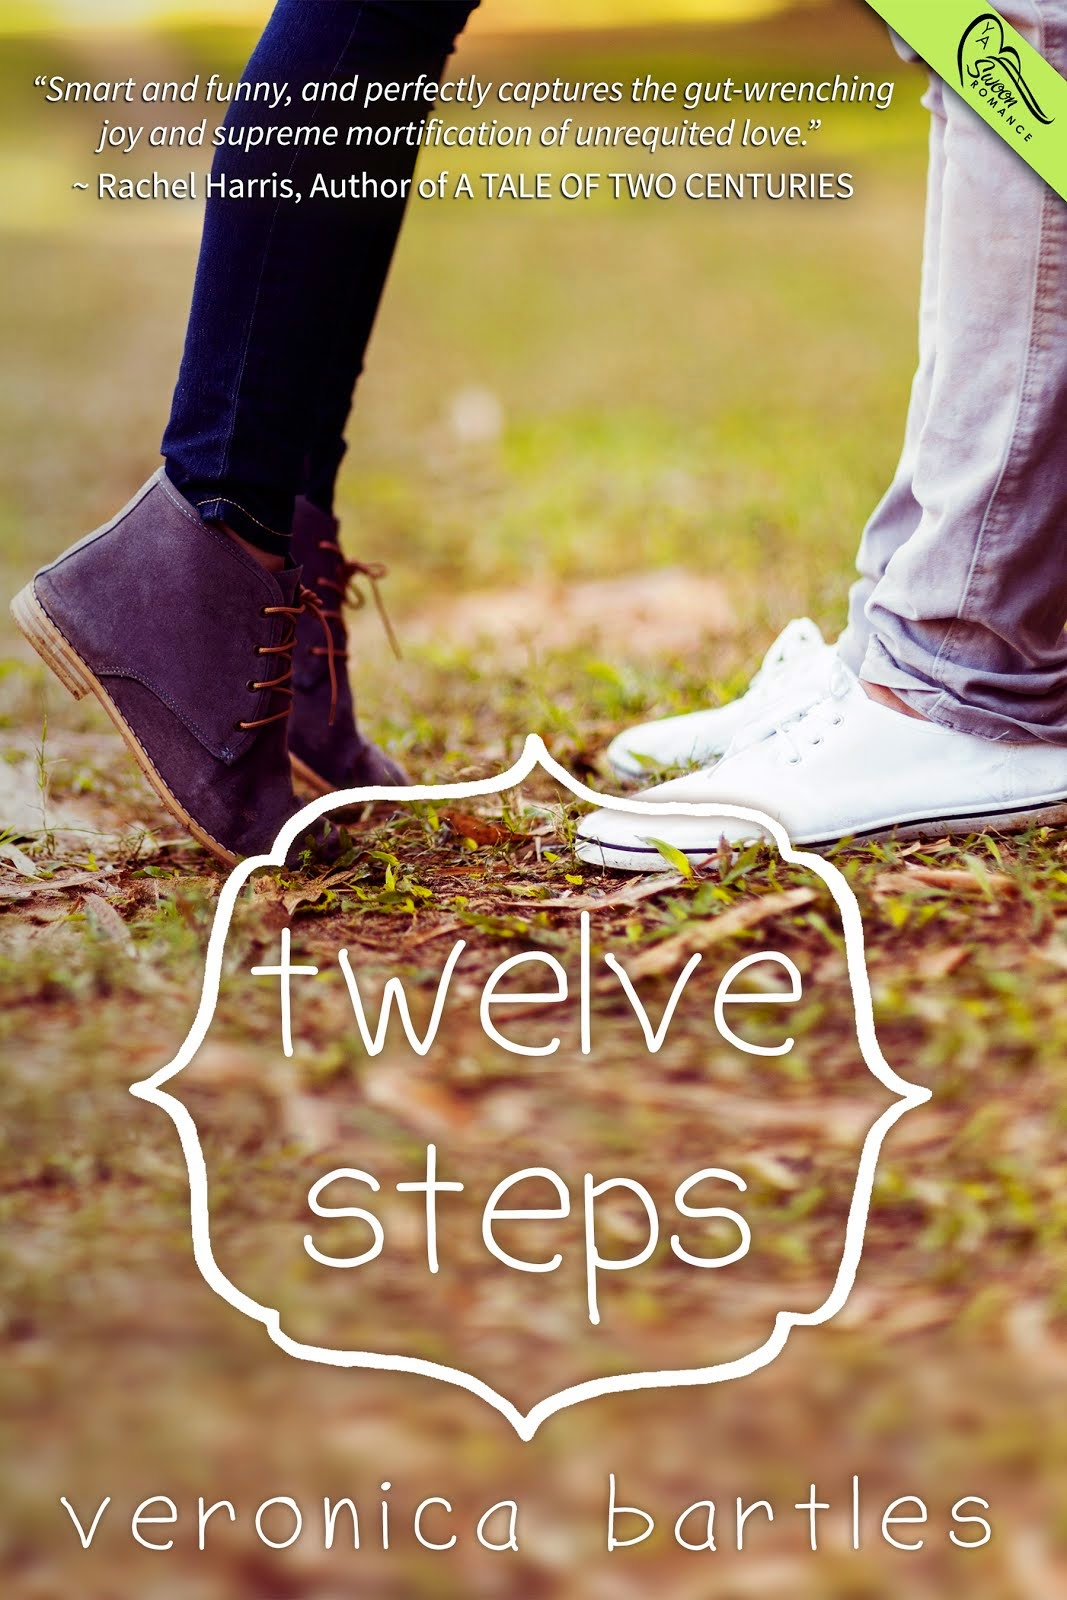 http://www.amazon.com/Twelve-Steps-Veronica-Bartles-ebook/dp/B00KH8VEZU/ref=sr_1_1?ie=UTF8&qid=1404486954&sr=8-1&keywords=twelve+steps